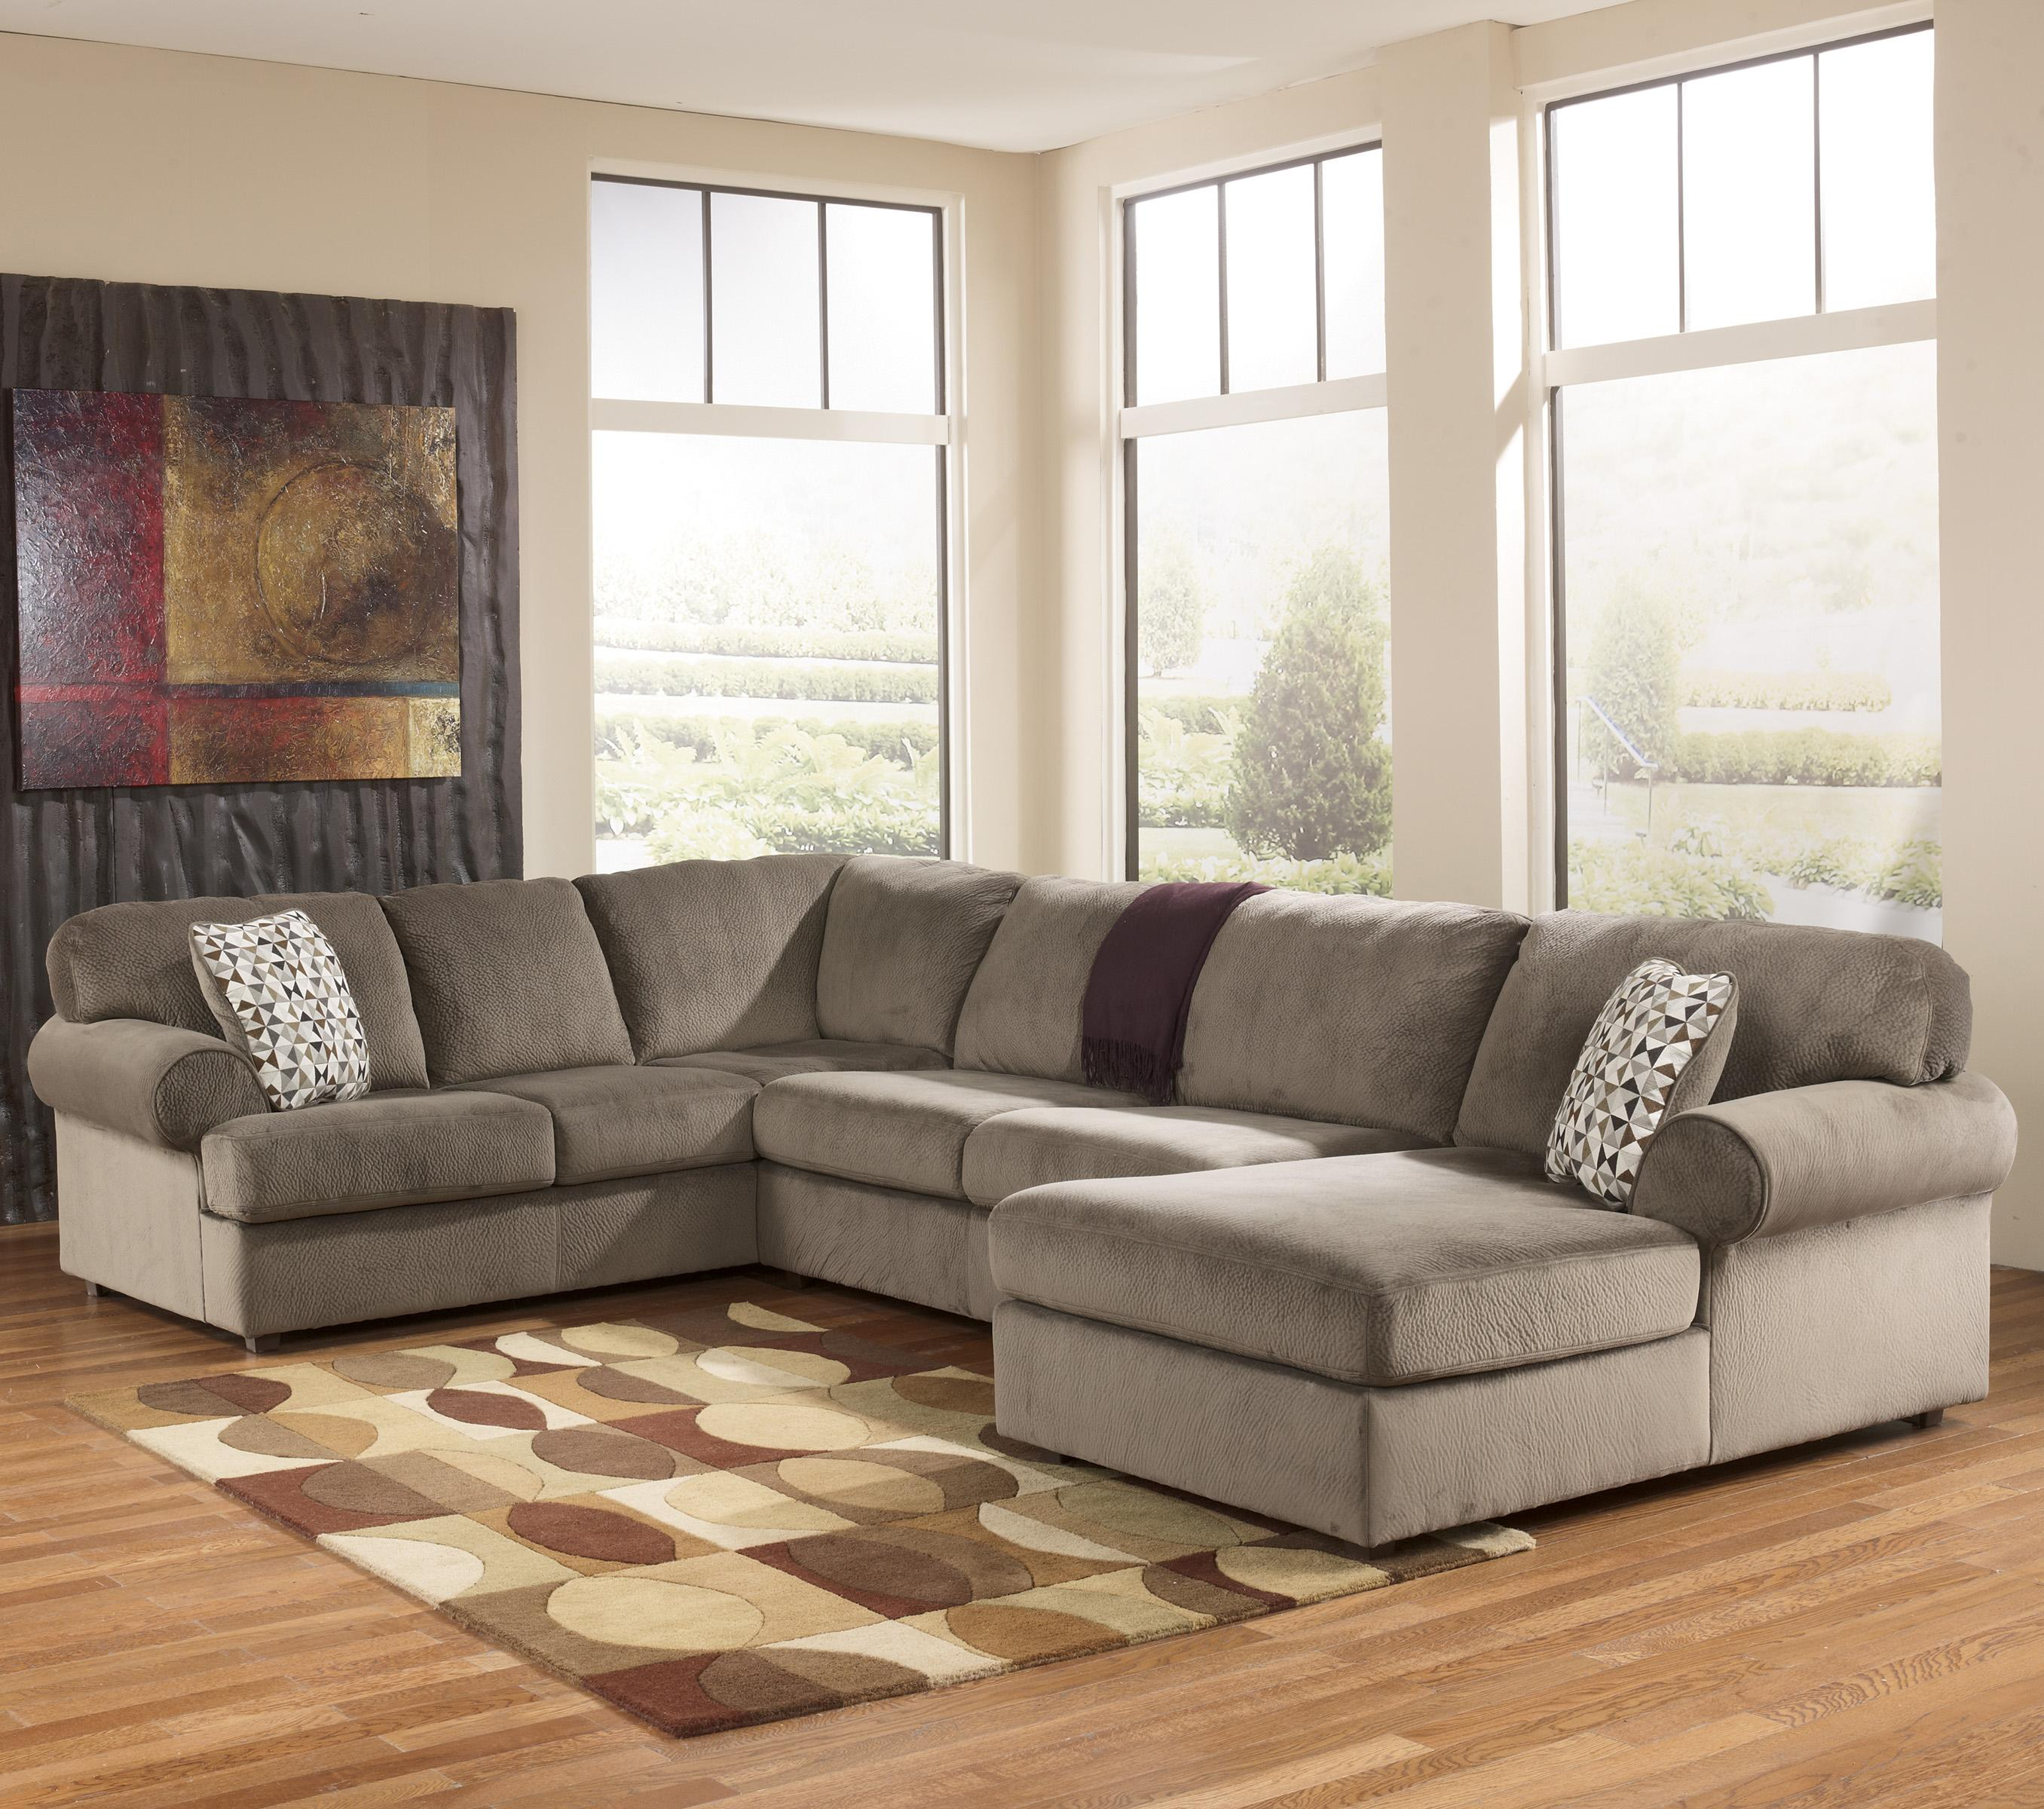 Ashleys Furnitures: Casual Sectional Sofa With Right Chaise By Signature